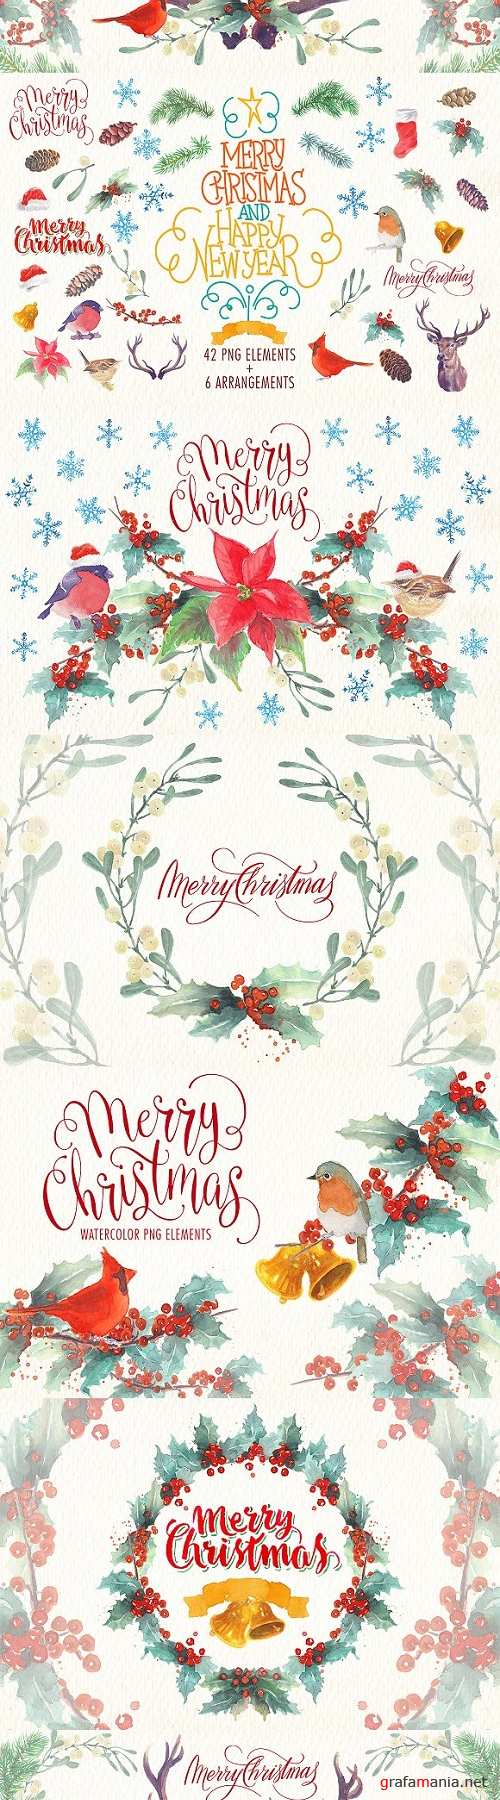 Watercolor christmas png elements 1949984